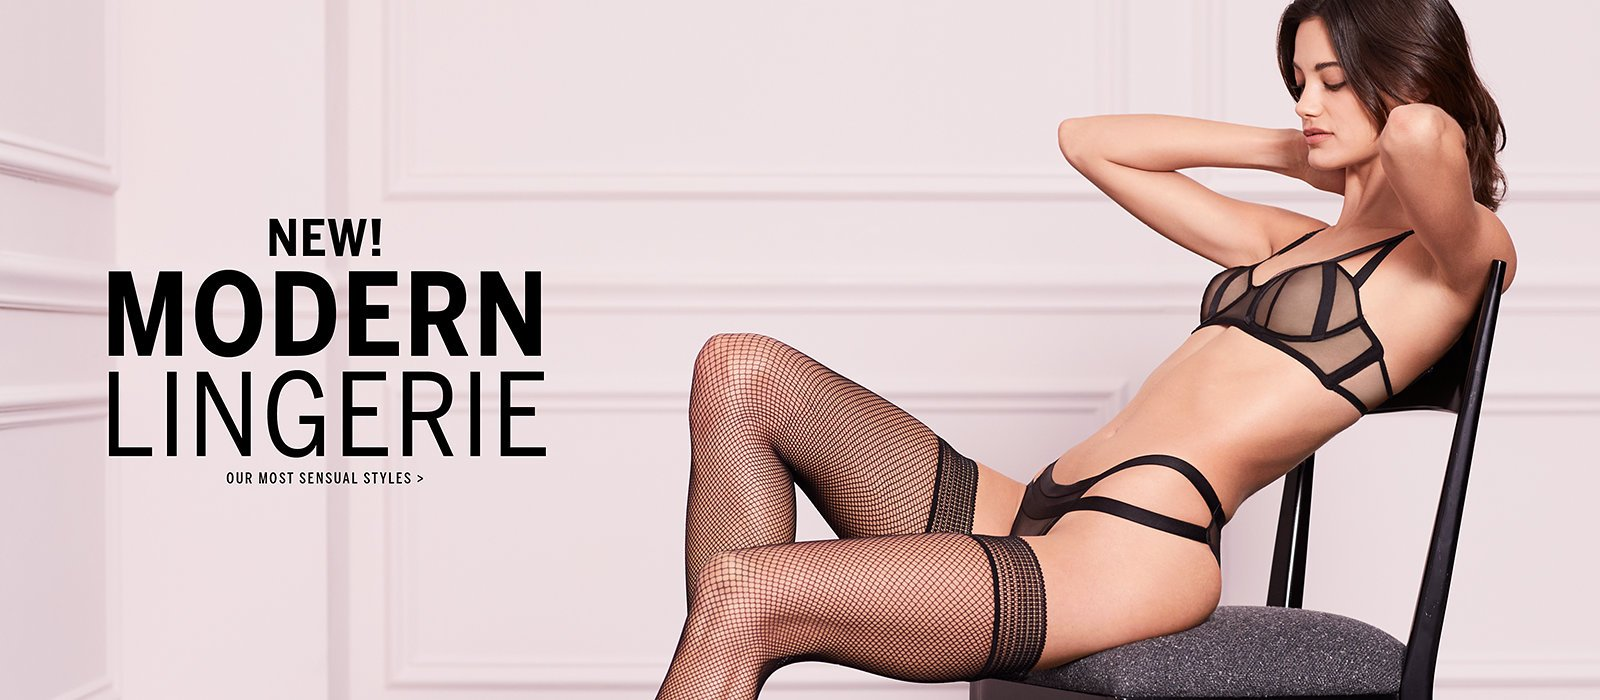 a4ccc414e Modern Lingerie. Click for our most sensual styles.